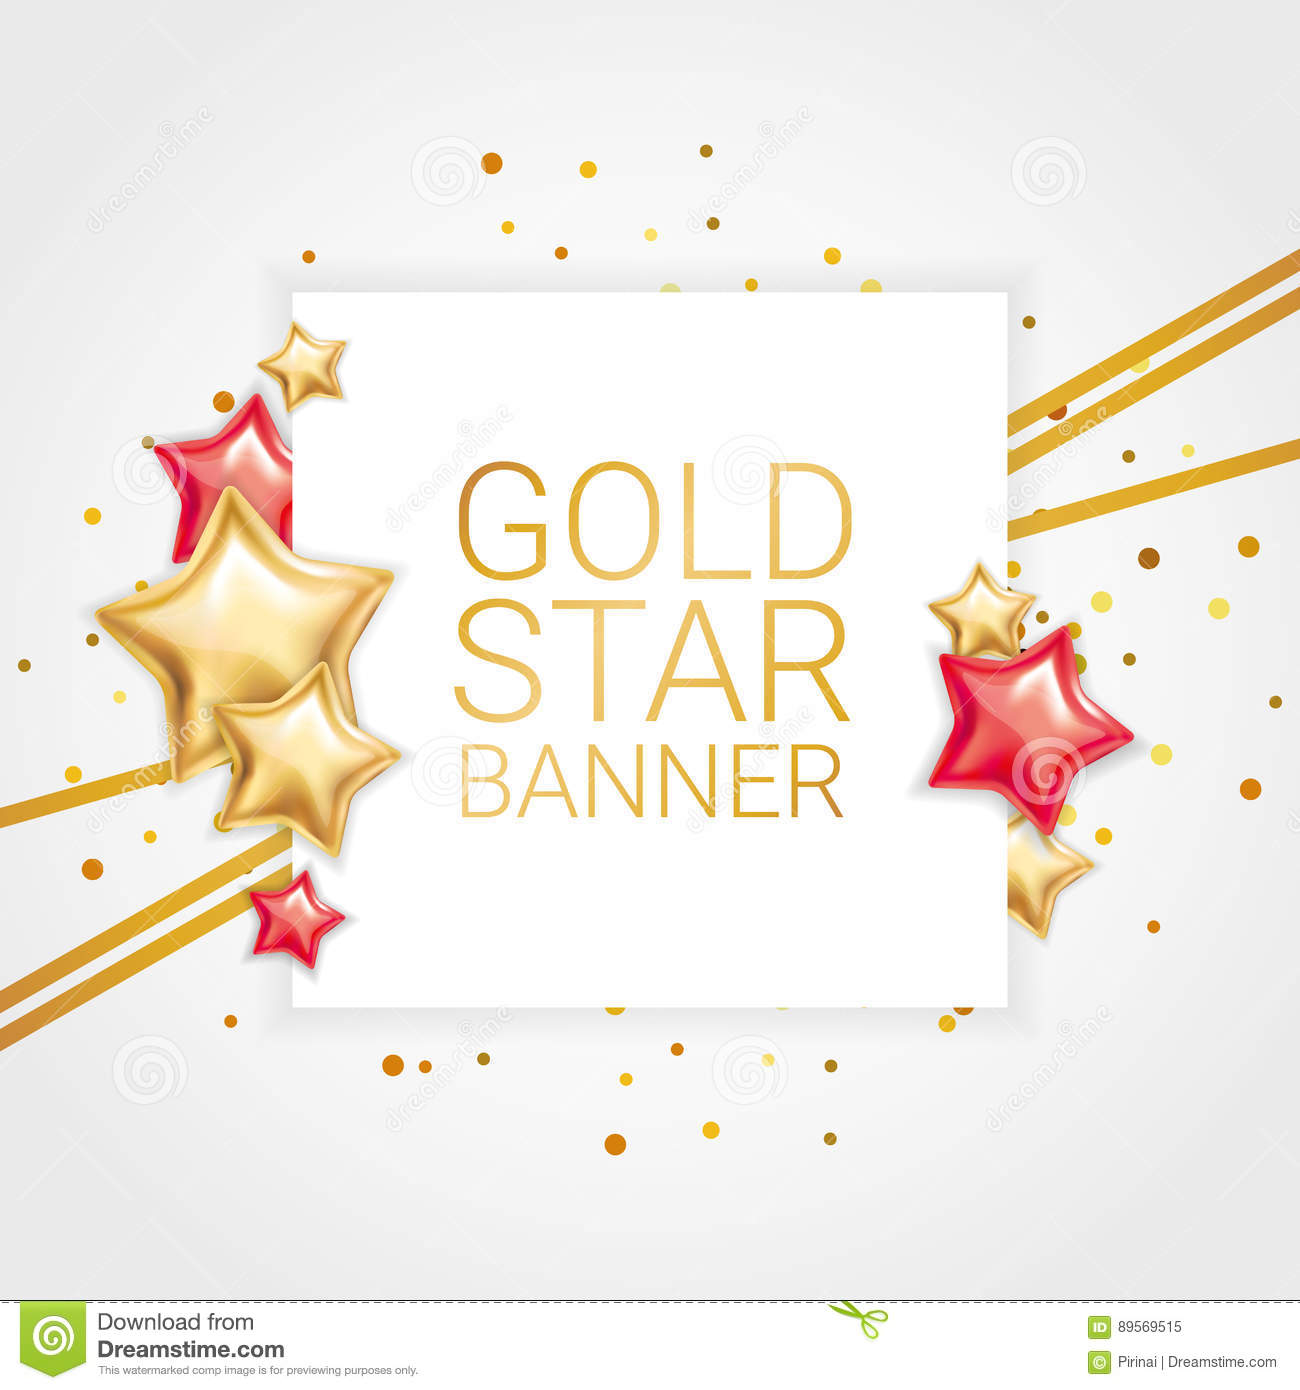 1.5 Inch Red Star Banner - Buy Ribbons Online